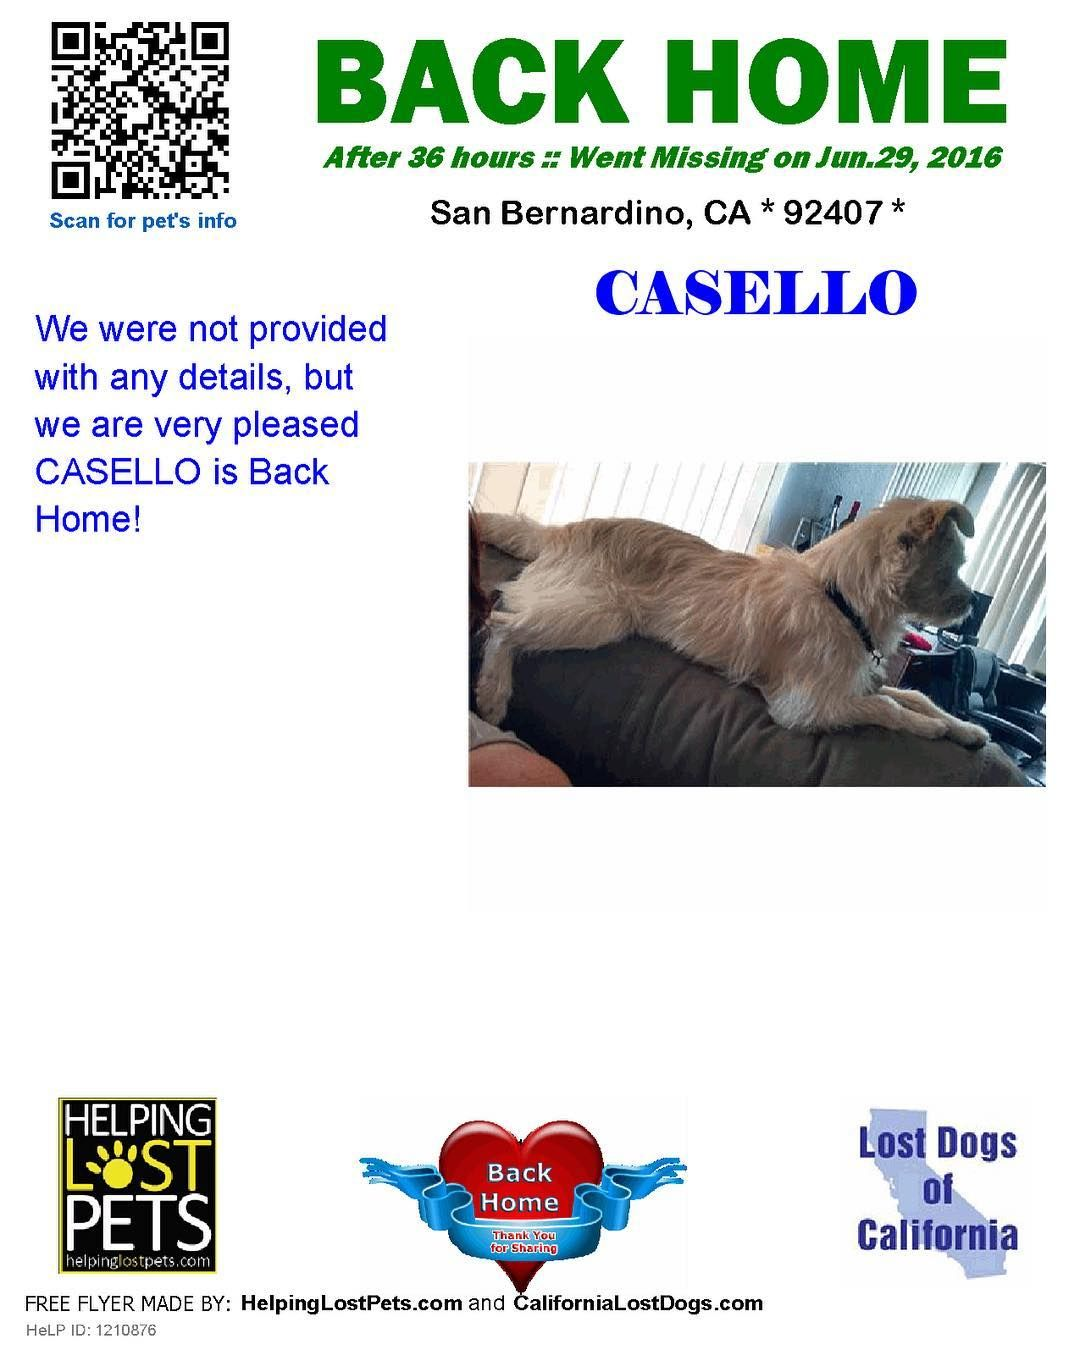 Backhome Casella Chihuahua Mix From Sanbernardino Ca Has Been Reunited With His Family Lost 6 29 16 Back Home 6 30 16 Losing A Dog Losing A Pet Dogs